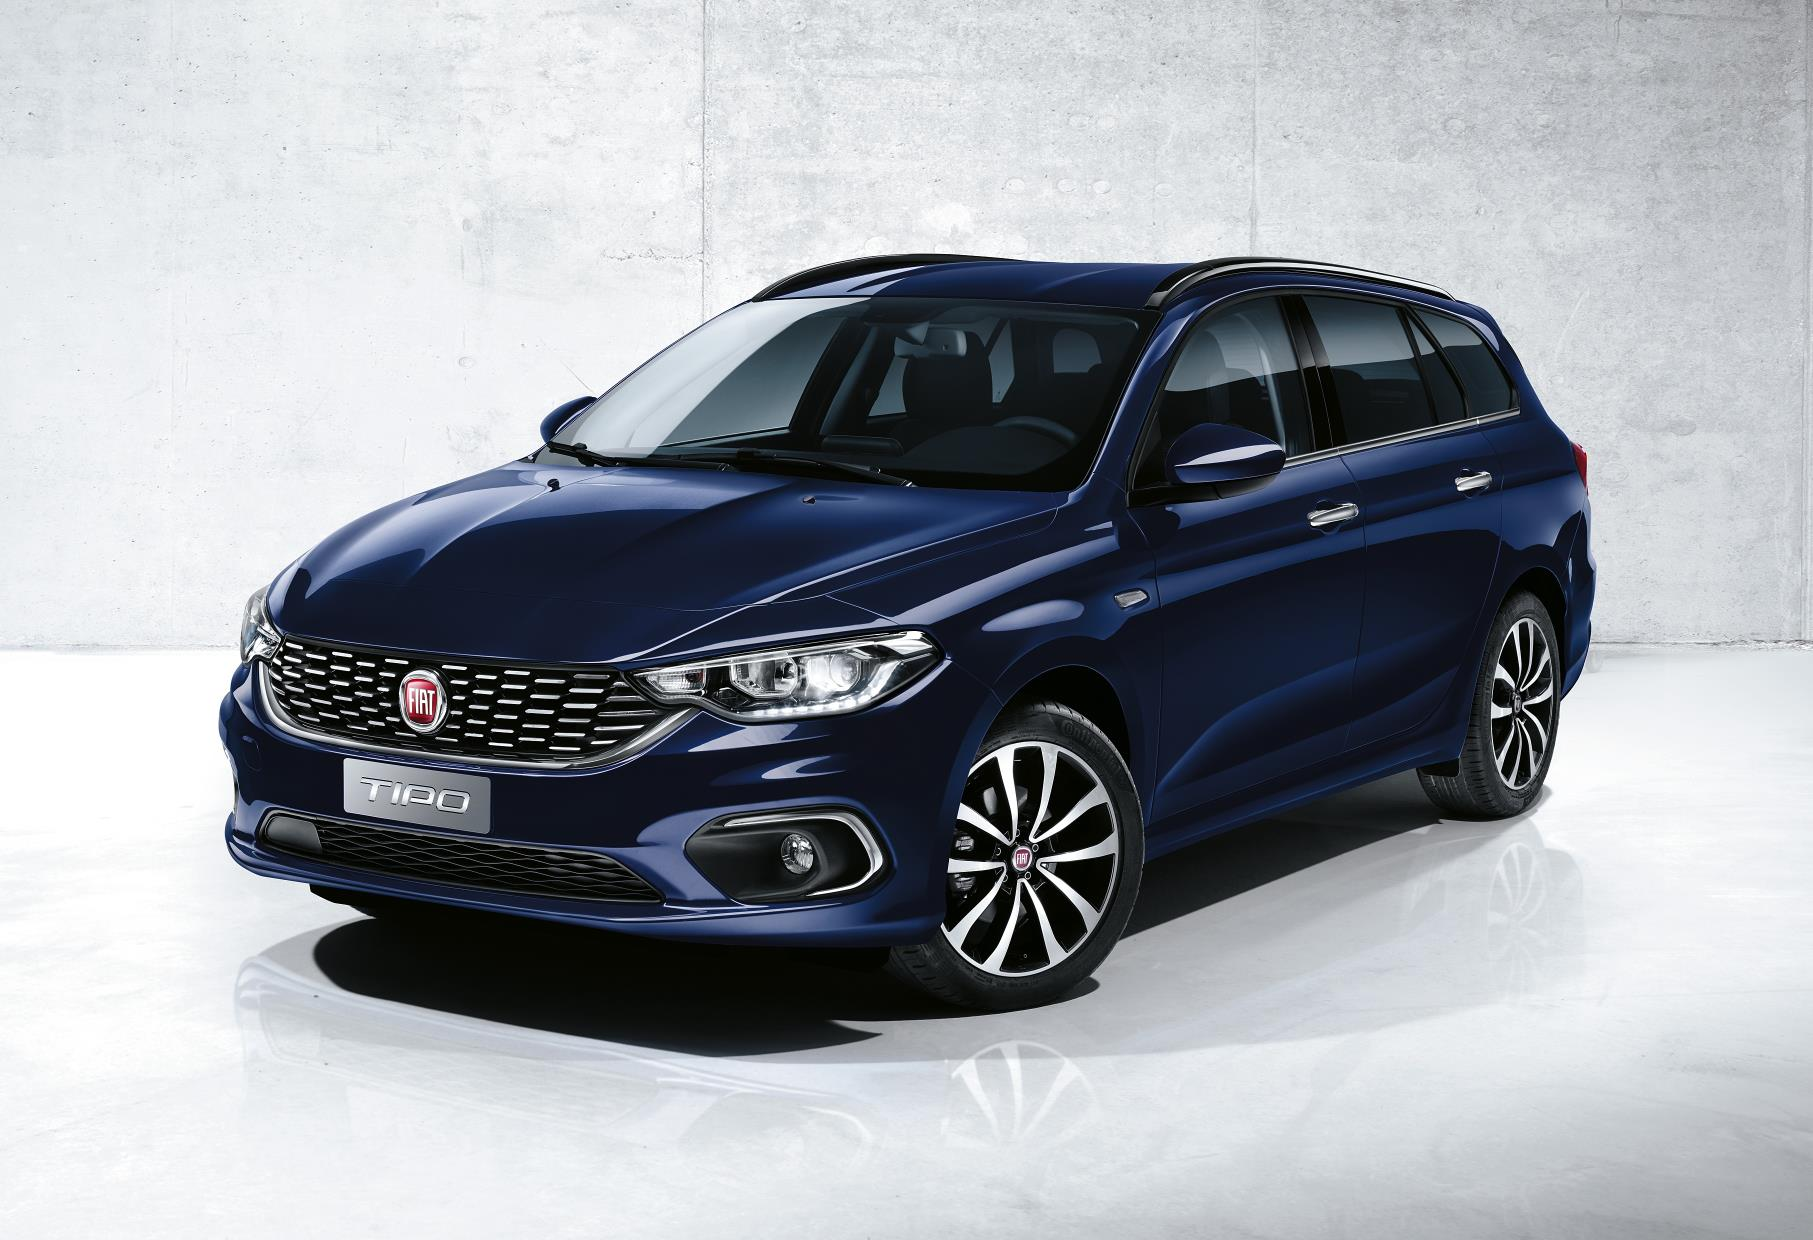 2016 Fiat Tipo Hatchback And Station Wagon Priced In The